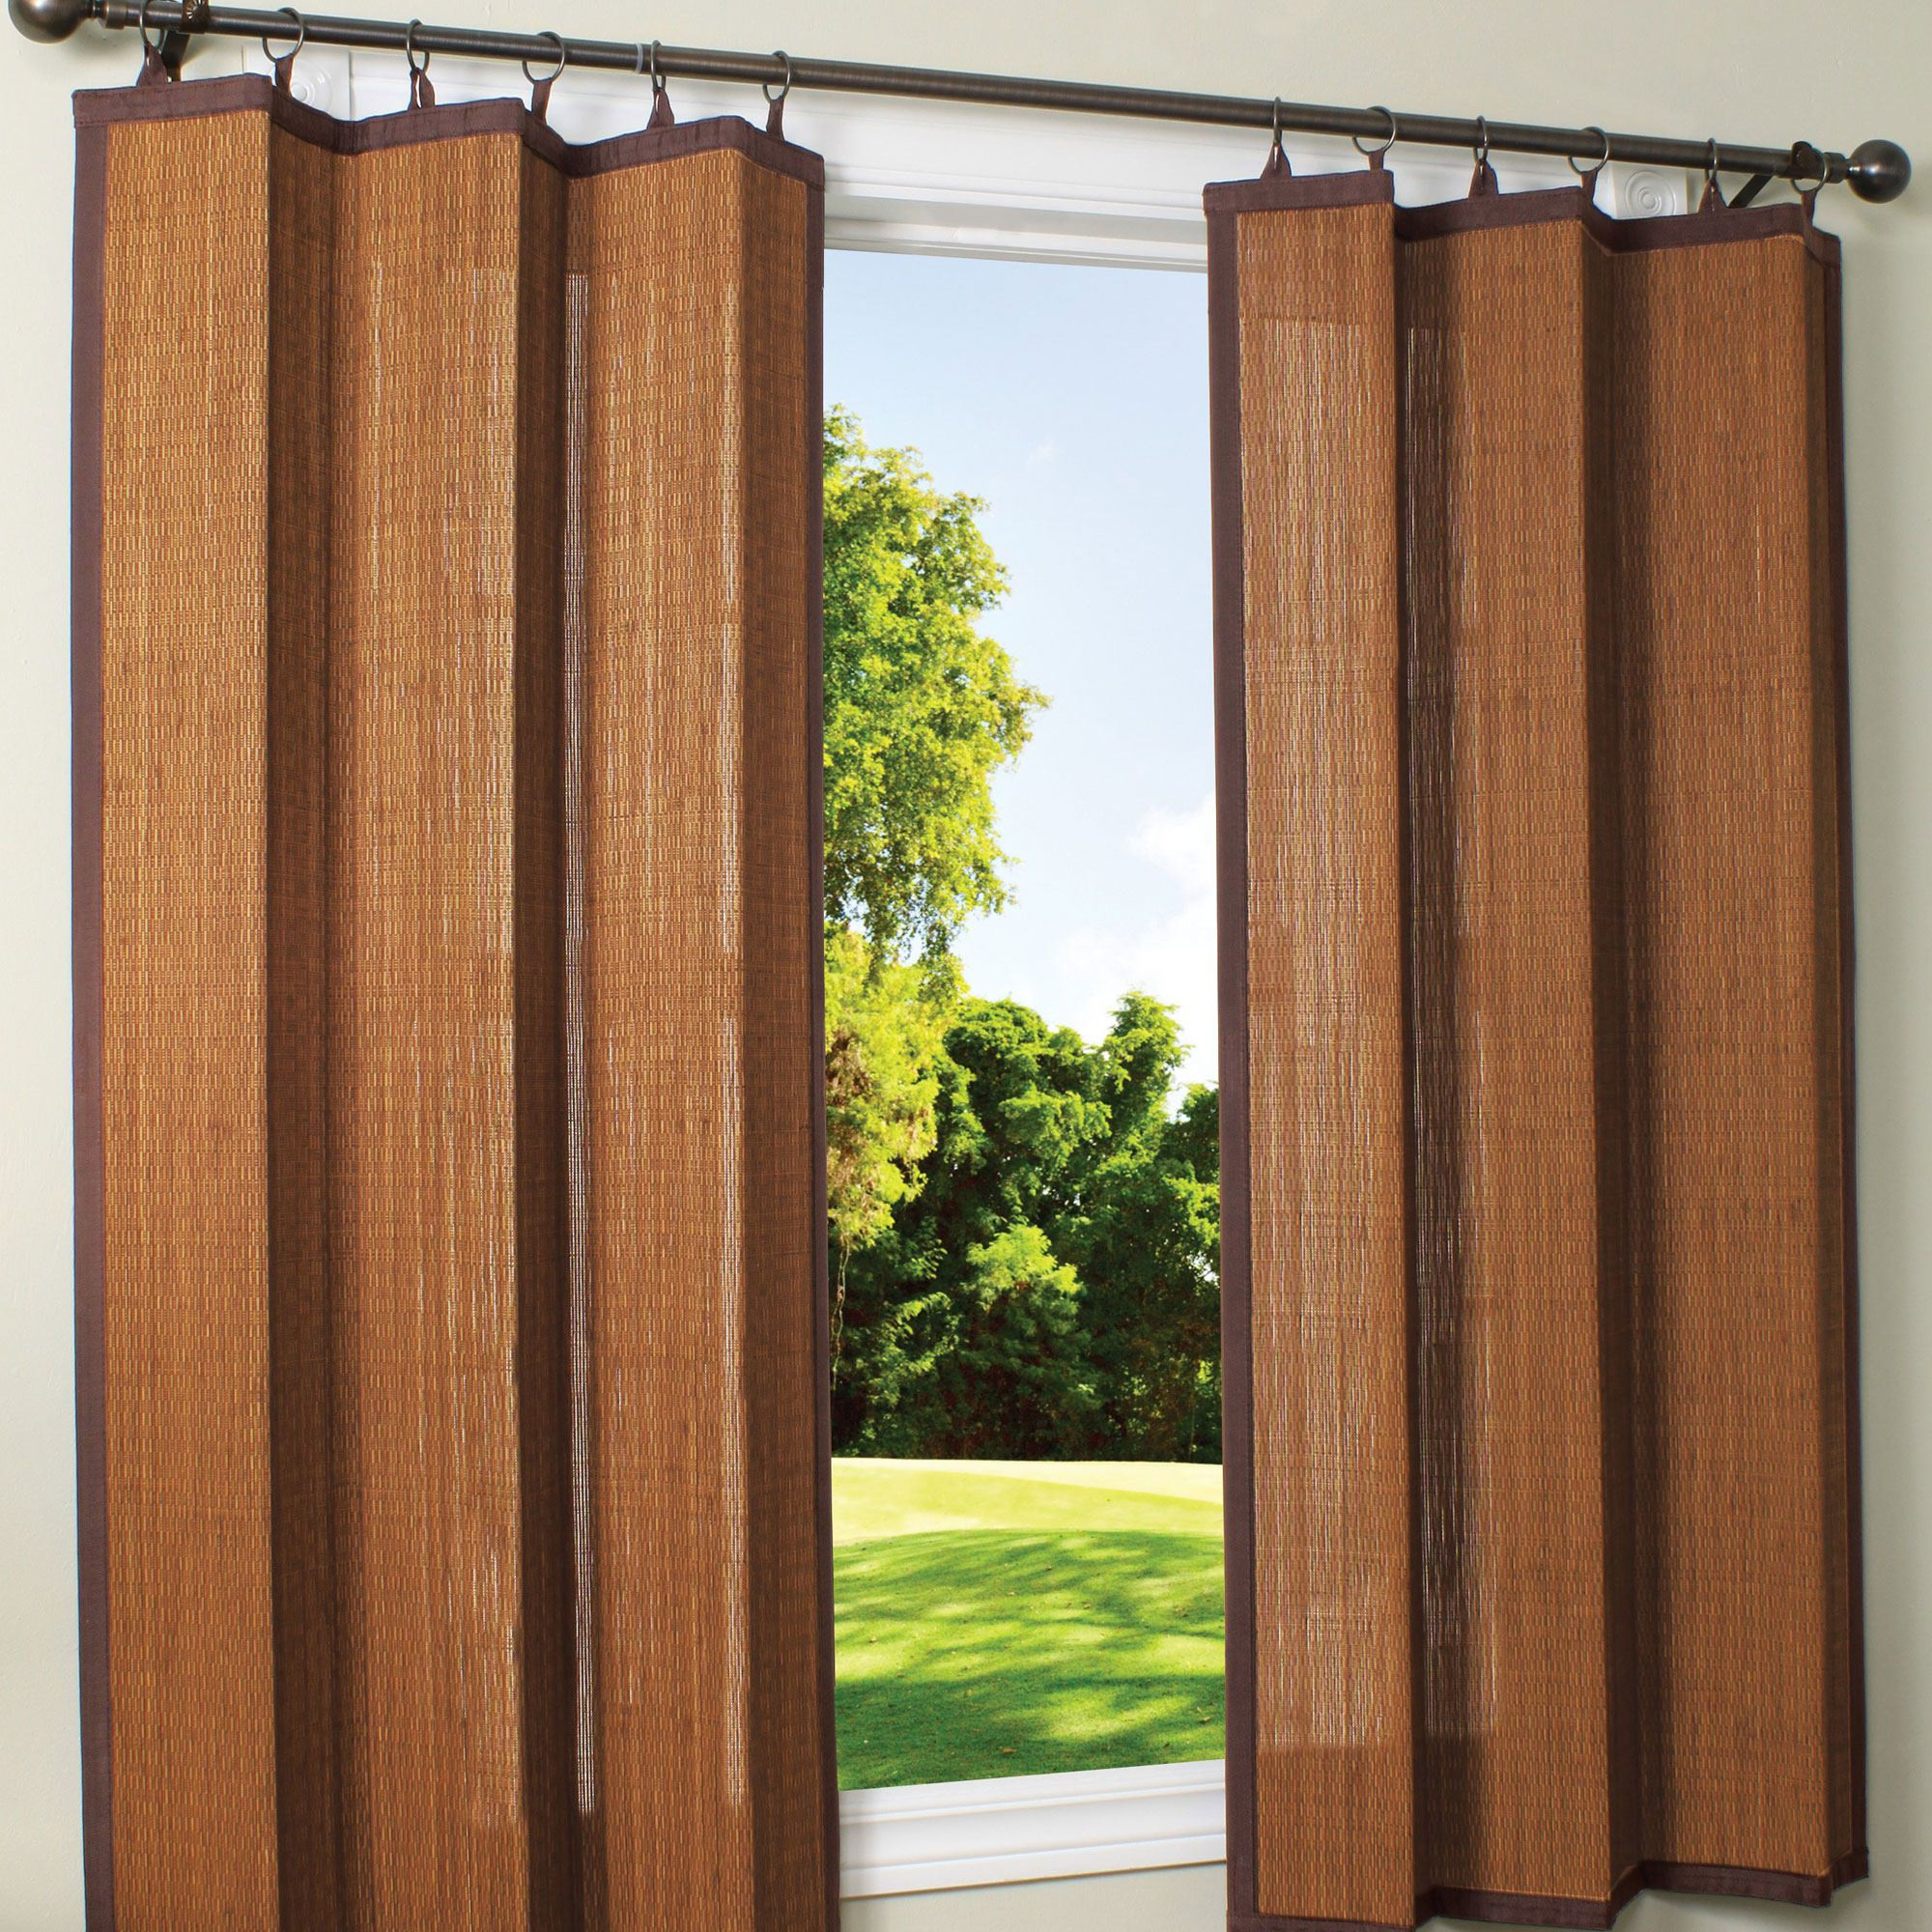 Solaris Outdoor Curtains | Sunbrella Curtains | Sunbrella Fabric Cushions